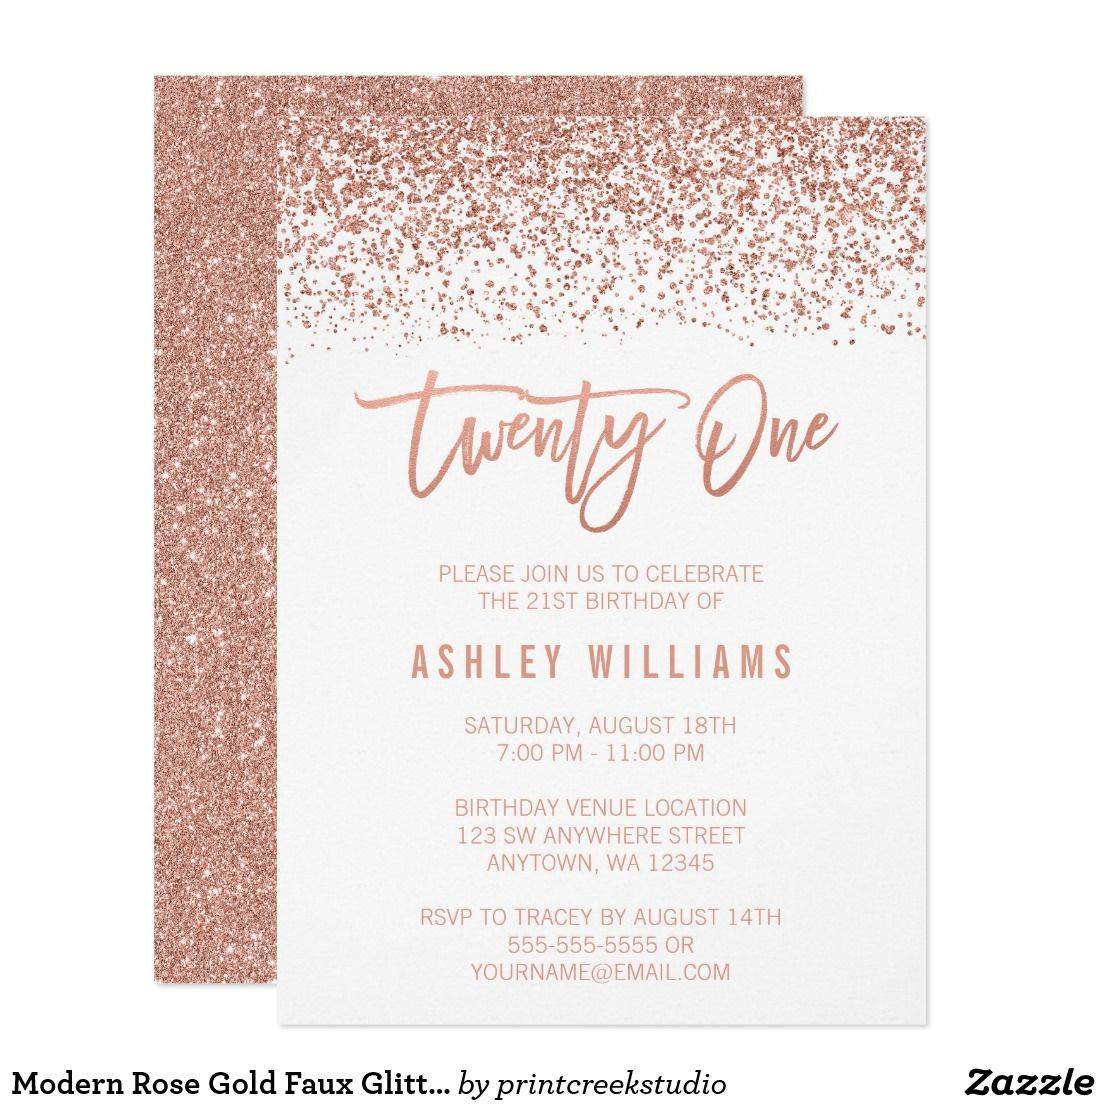 Modern Rose Gold Faux Glitter 21st Birthday Invitation Glamorous Twenty First Invitations Designs Are Flat Printed